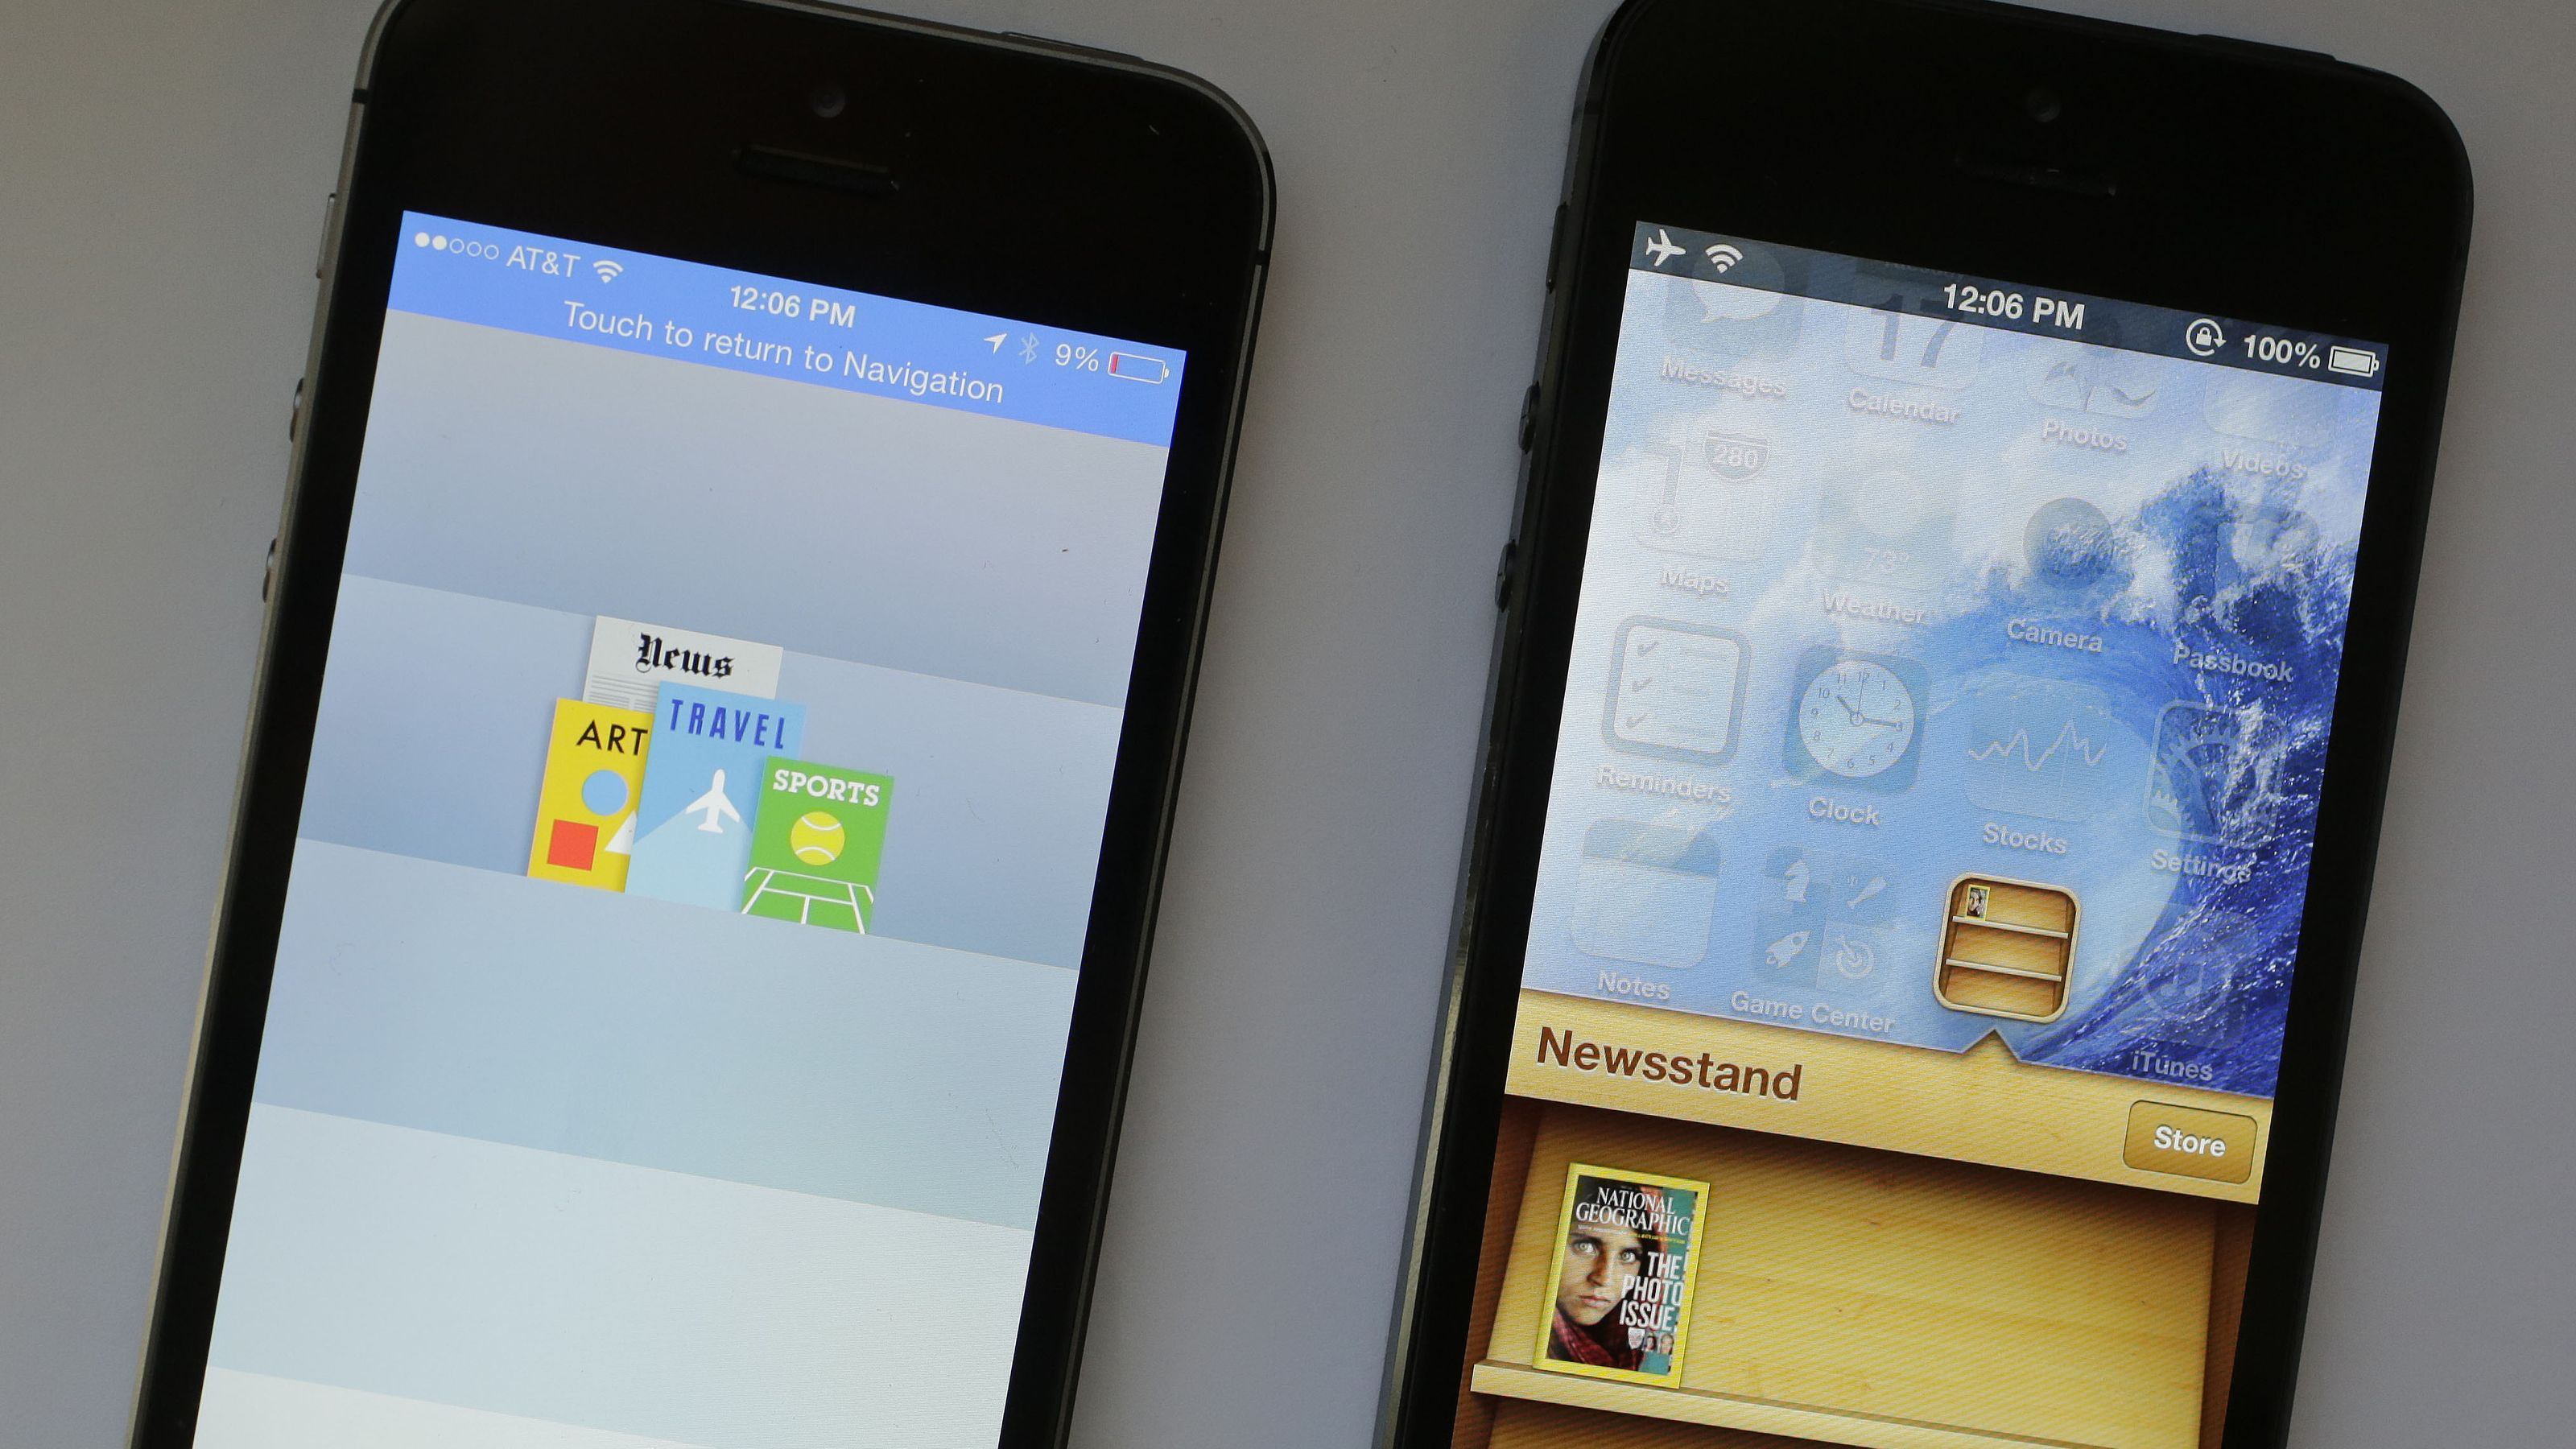 How to boost iphones battery life on ios 7 iphone